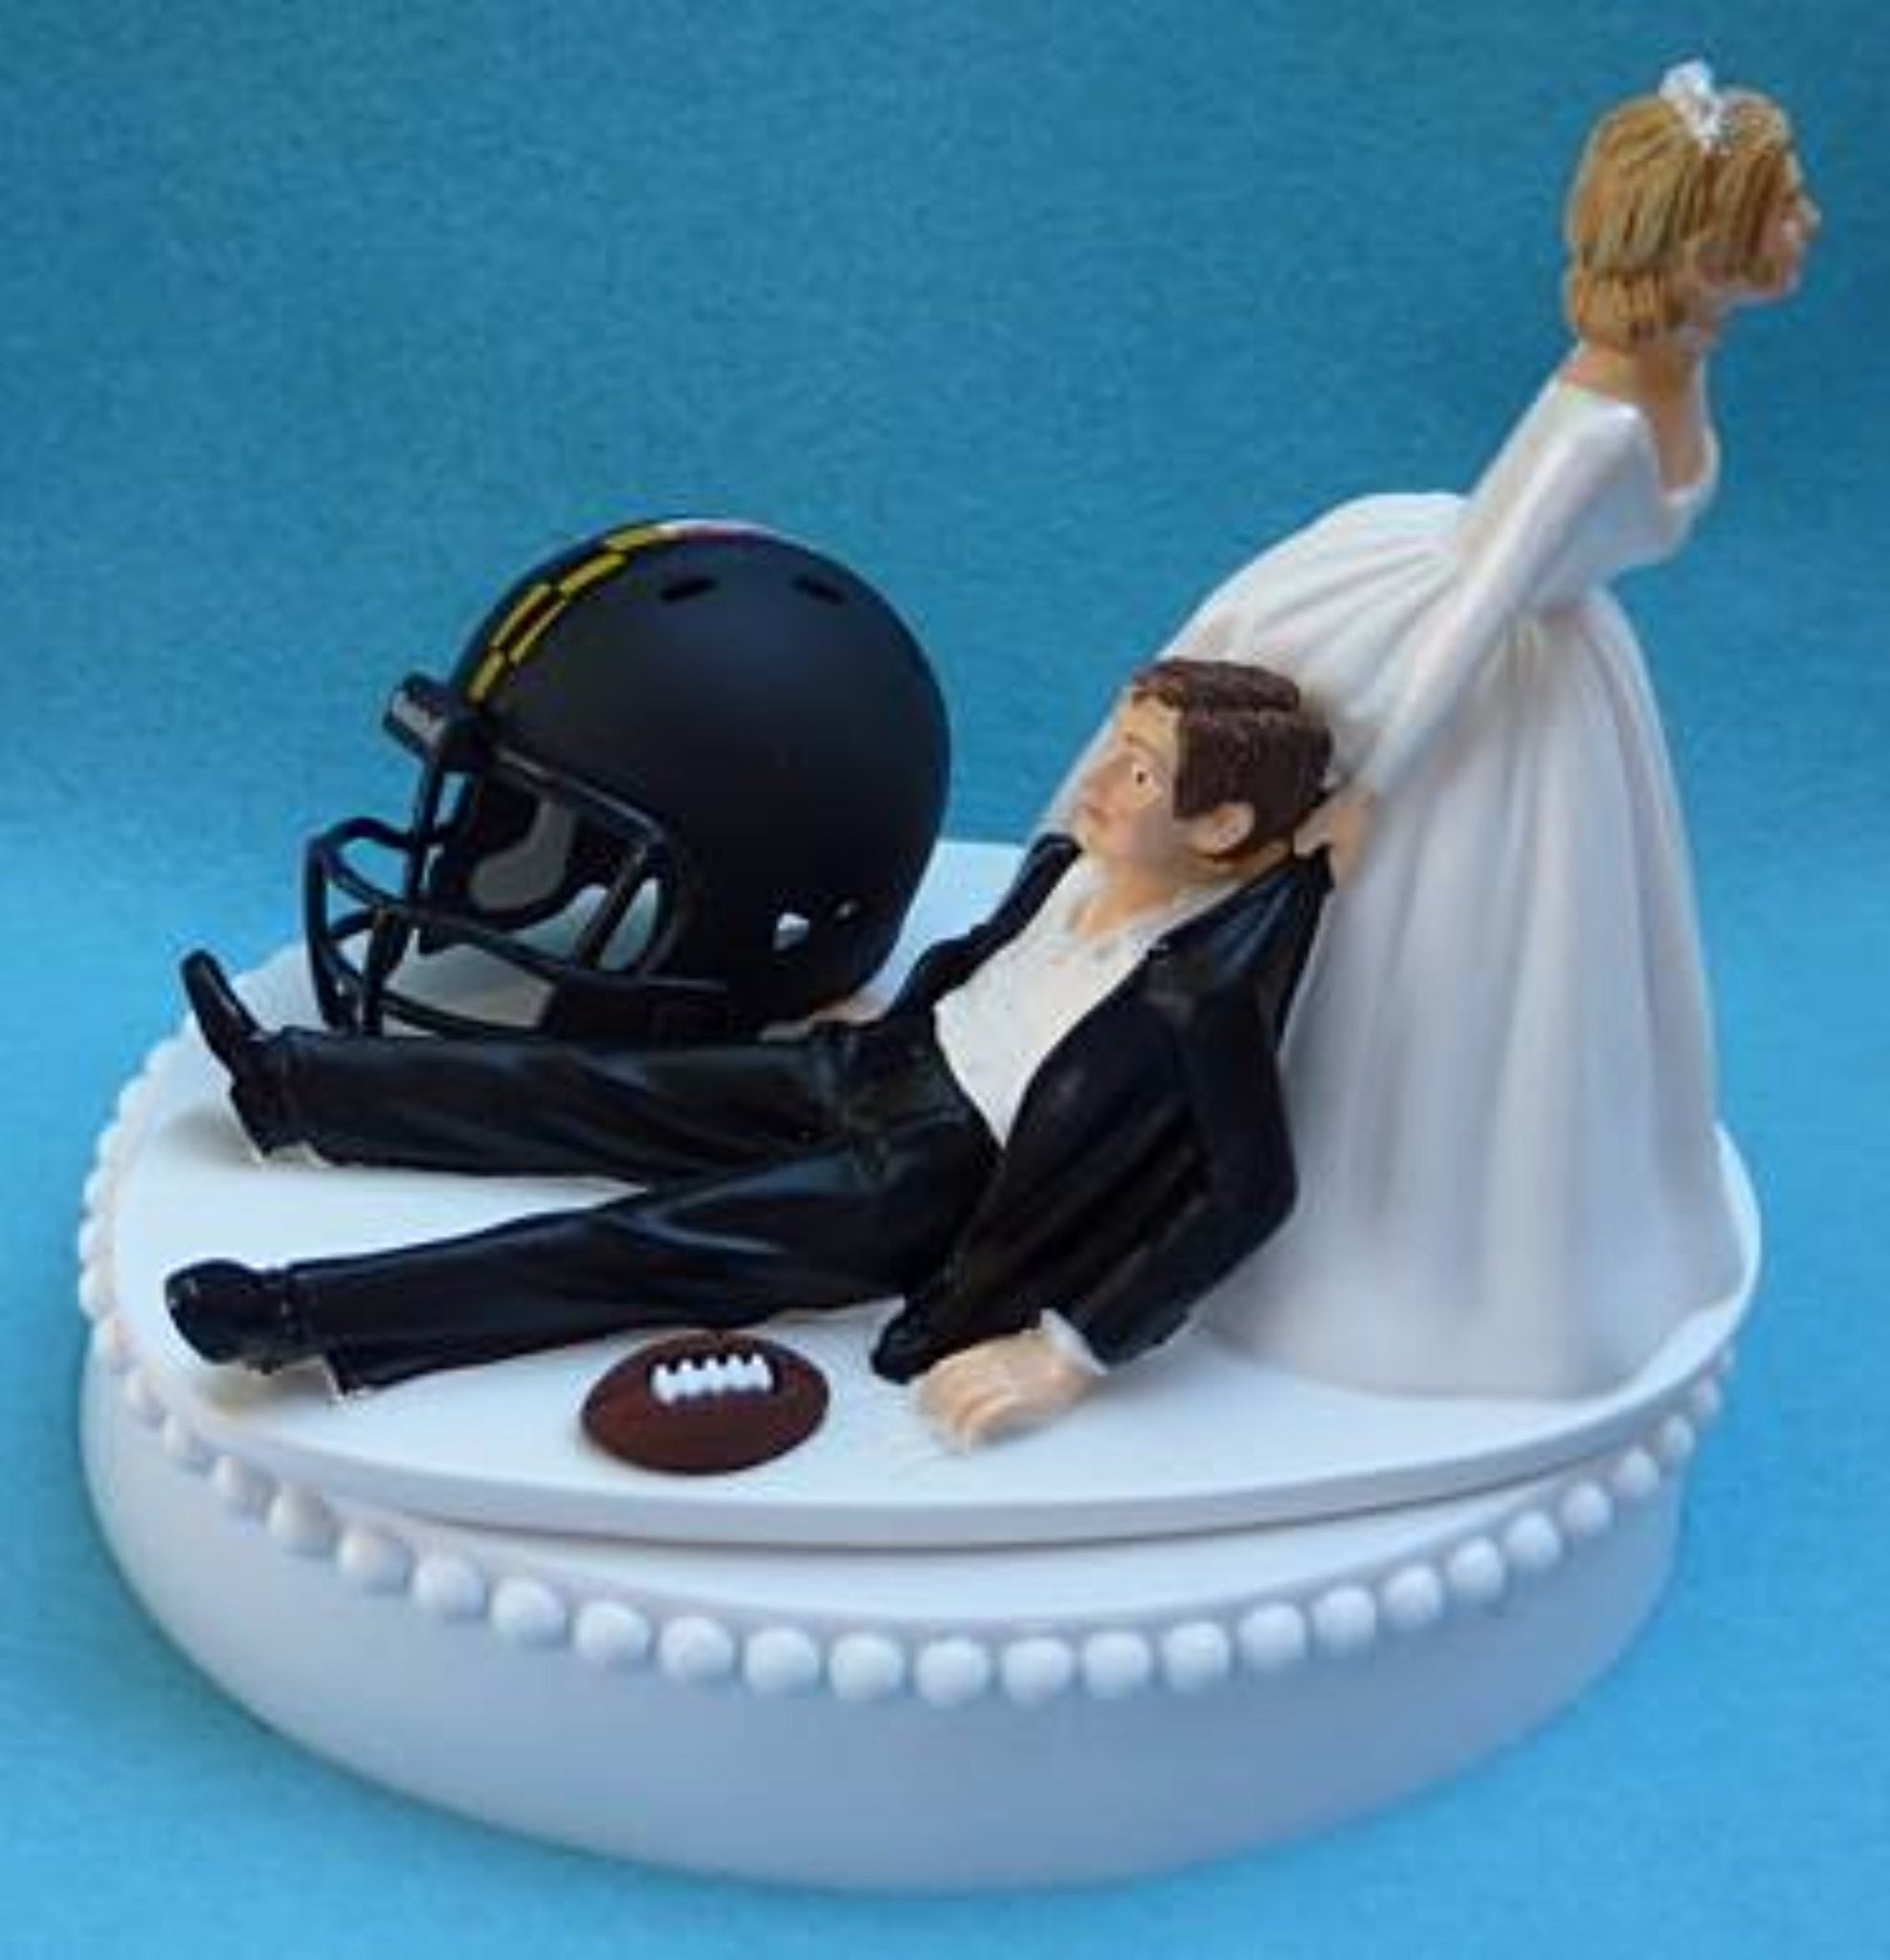 University of Maryland wedding cake topper Terrapins UM Terps football groom's cake top sports fans funny humorous reception gift ball helmet Fun Wedding Things